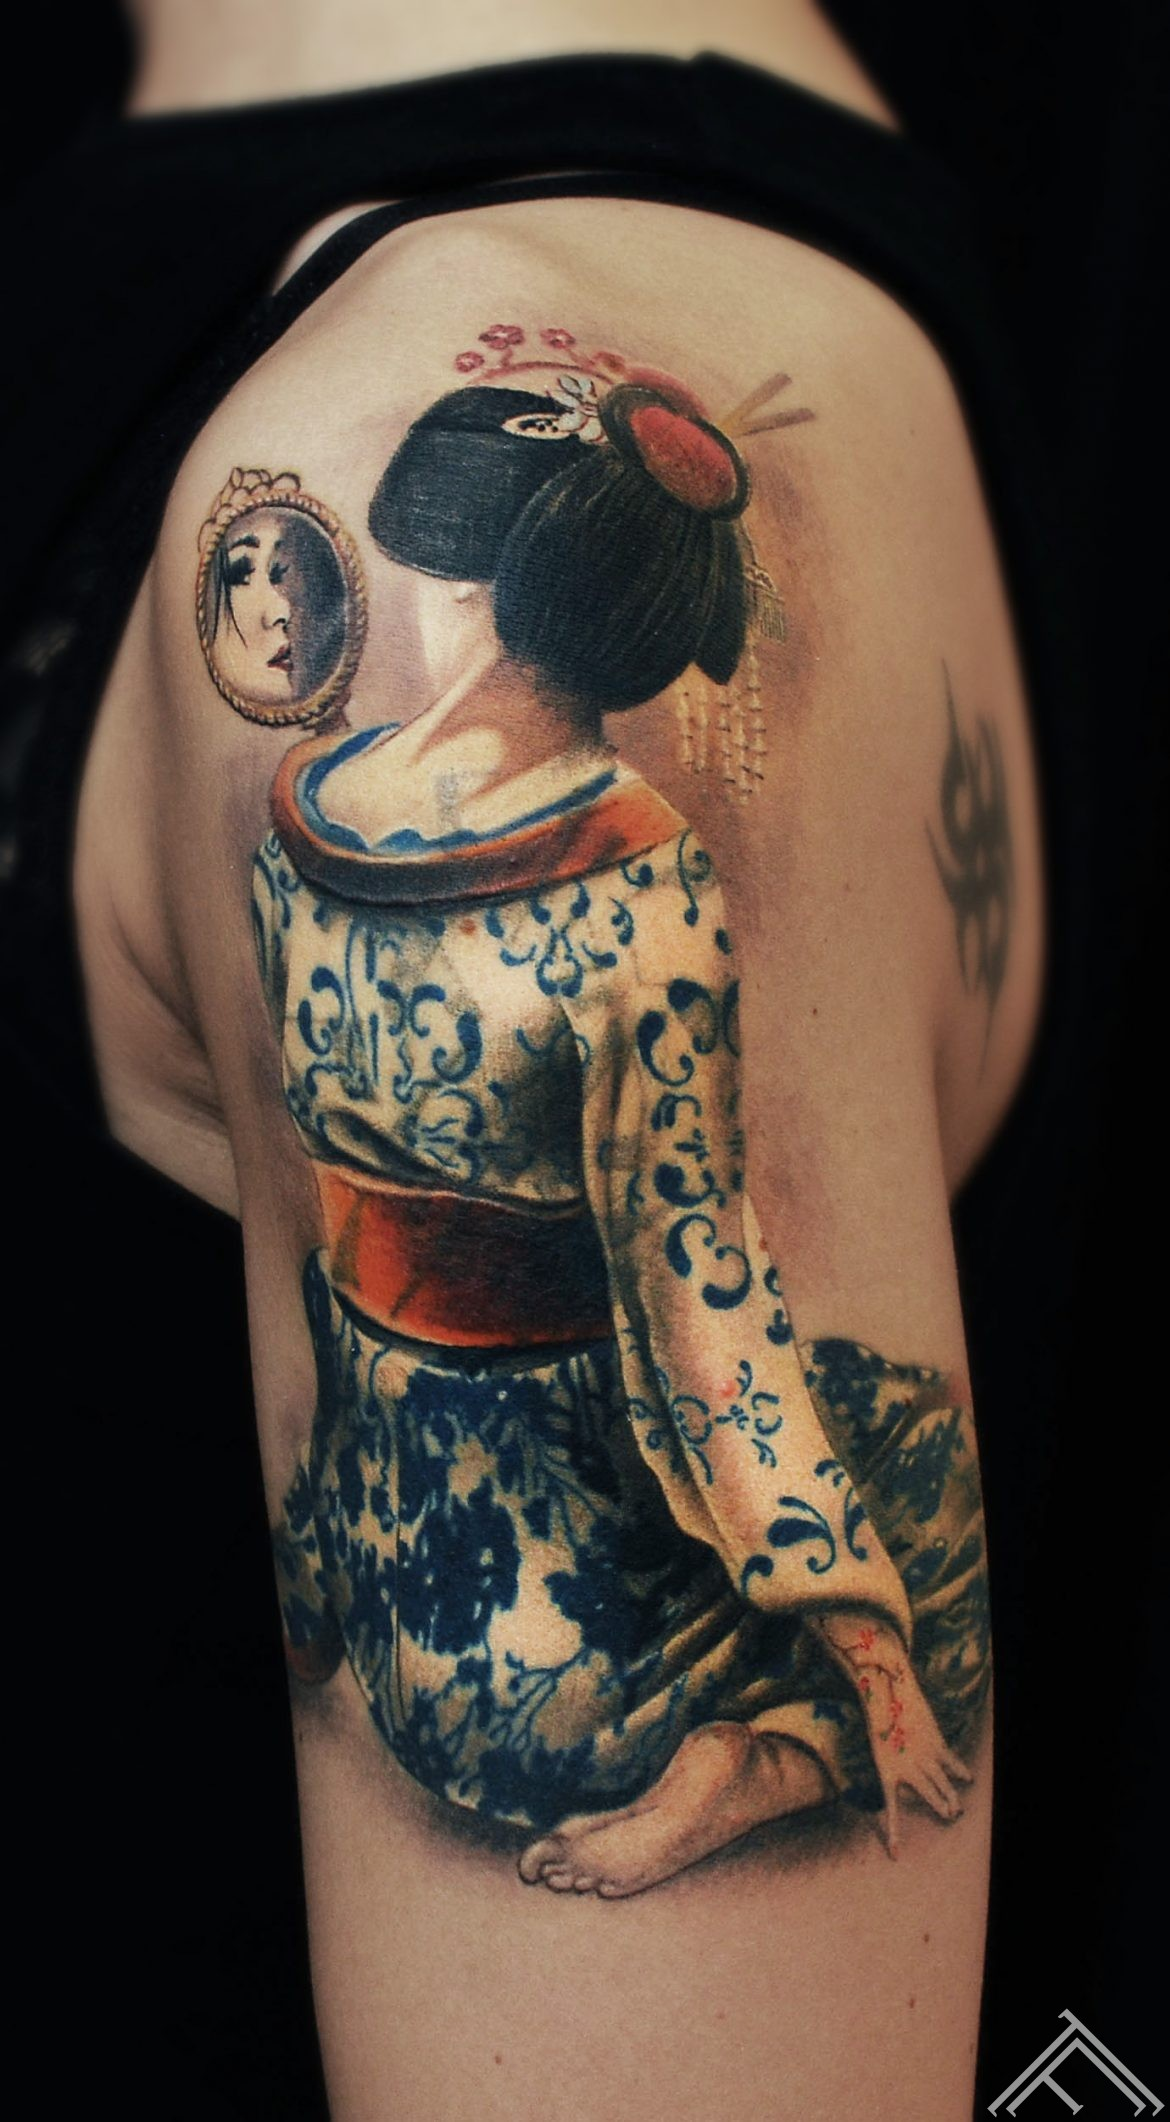 geisha-porcelain-mirror-japan-tattoo-tattoofrequency-coverup-riga-marispavlo